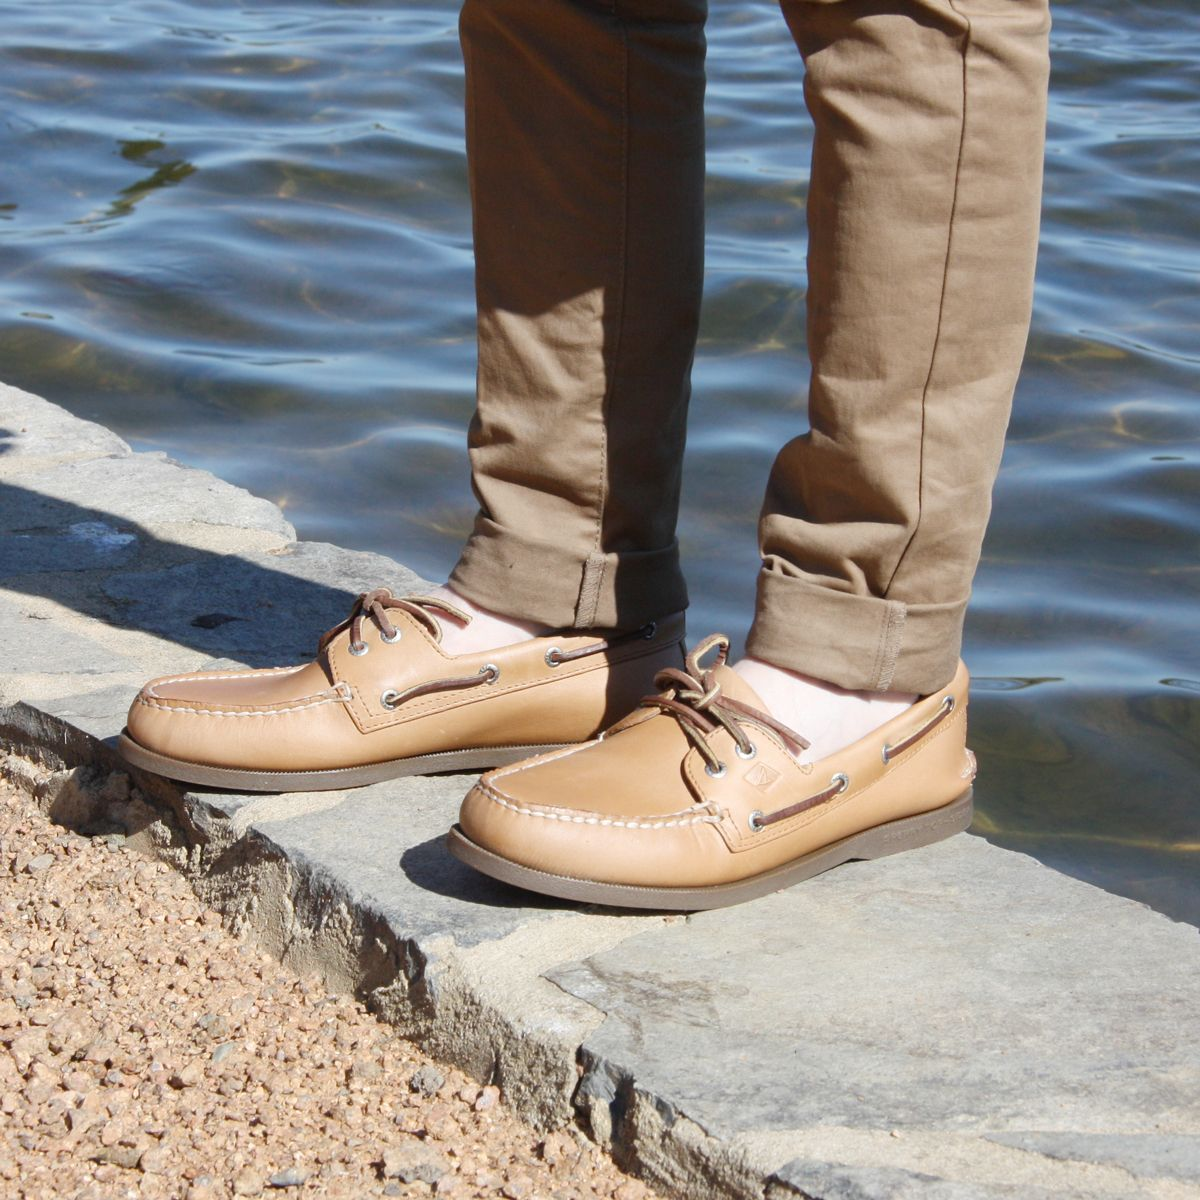 27175bcddaf SPERRY - The original boat shoes are now available at FSW Shoes ...